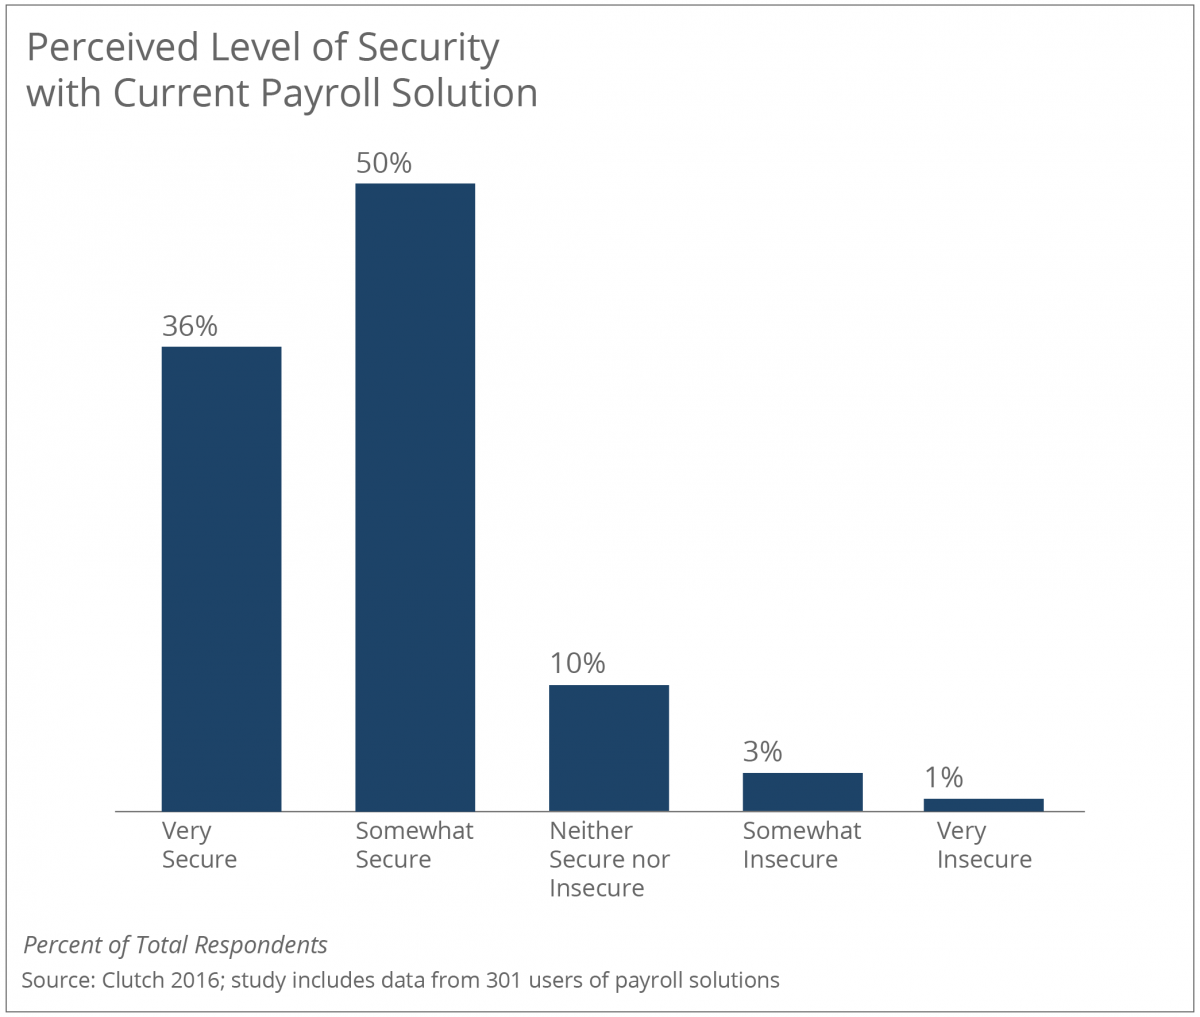 Perceived Level of Security with Payroll